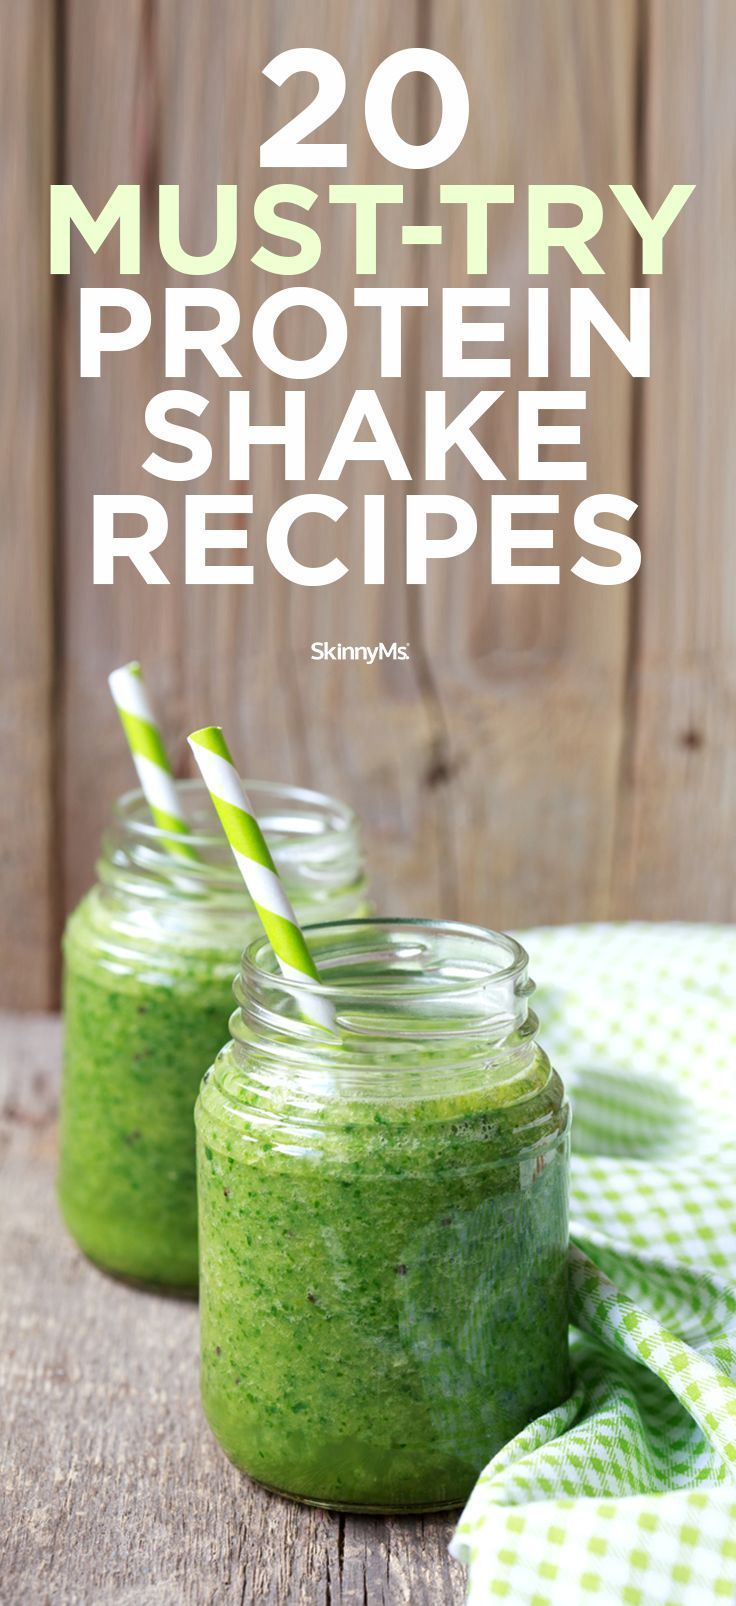 20 Must-Try Protein Shake Recipes